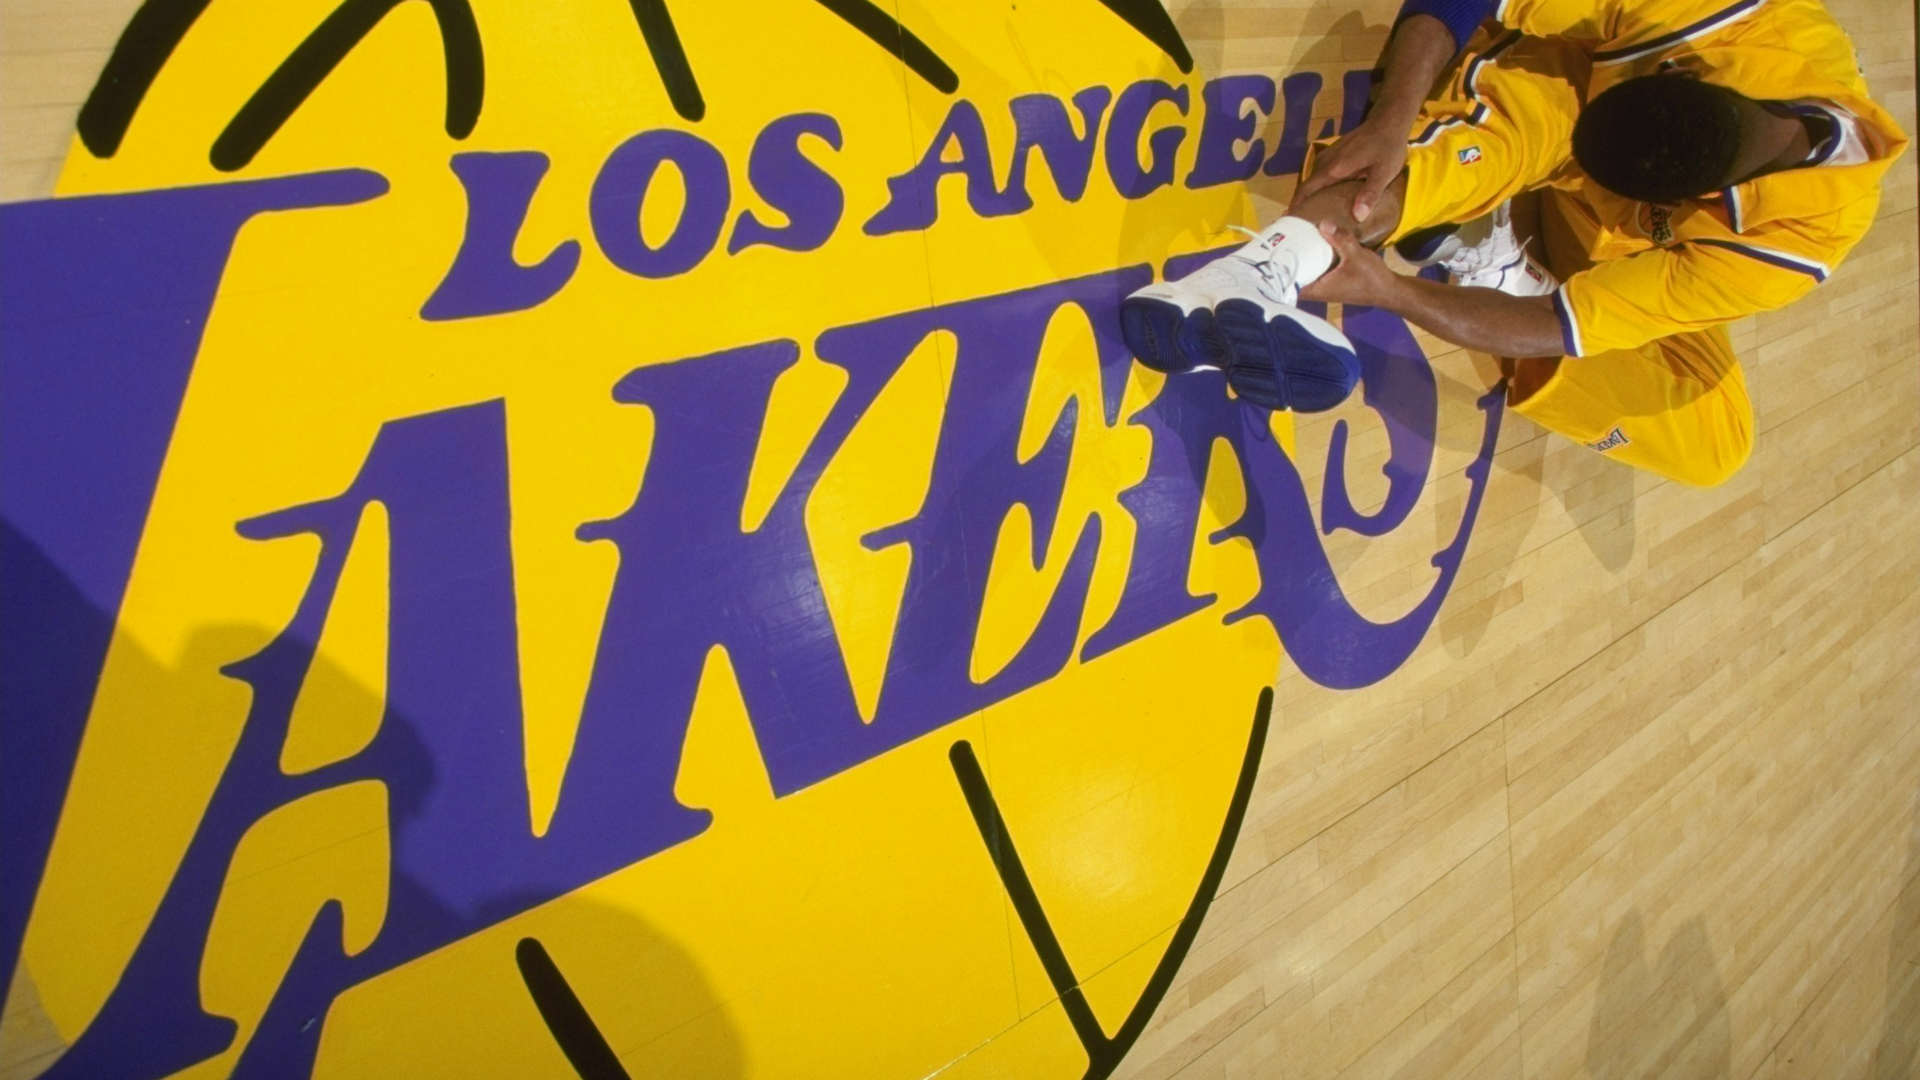 Lakers-072317-usnews-getty-ftr_1stapdup30d1k1vkv1l149ep01